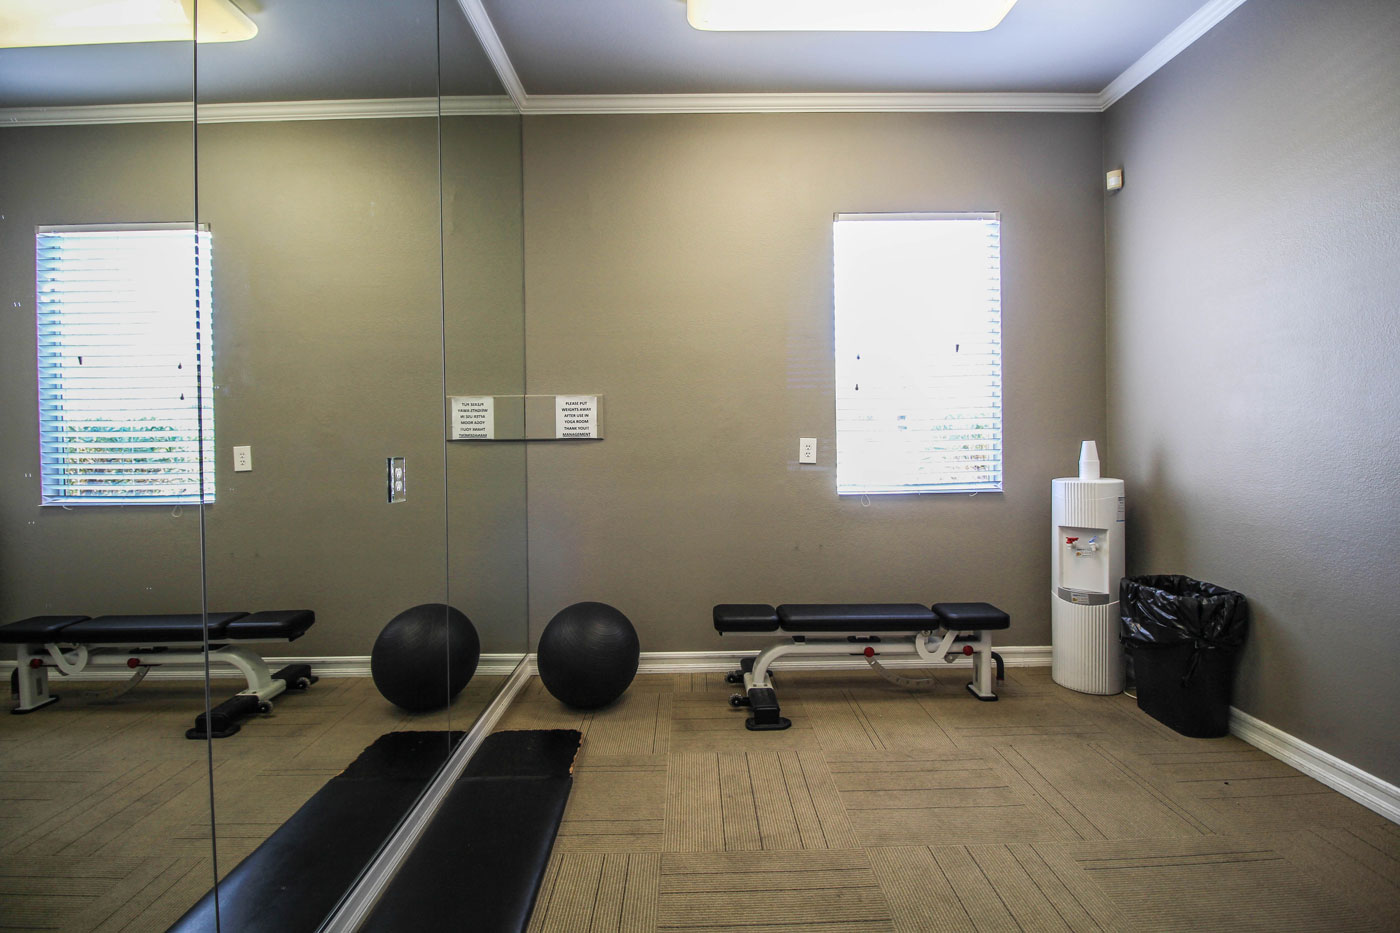 Yoga room with water dispenser and medicine ball.